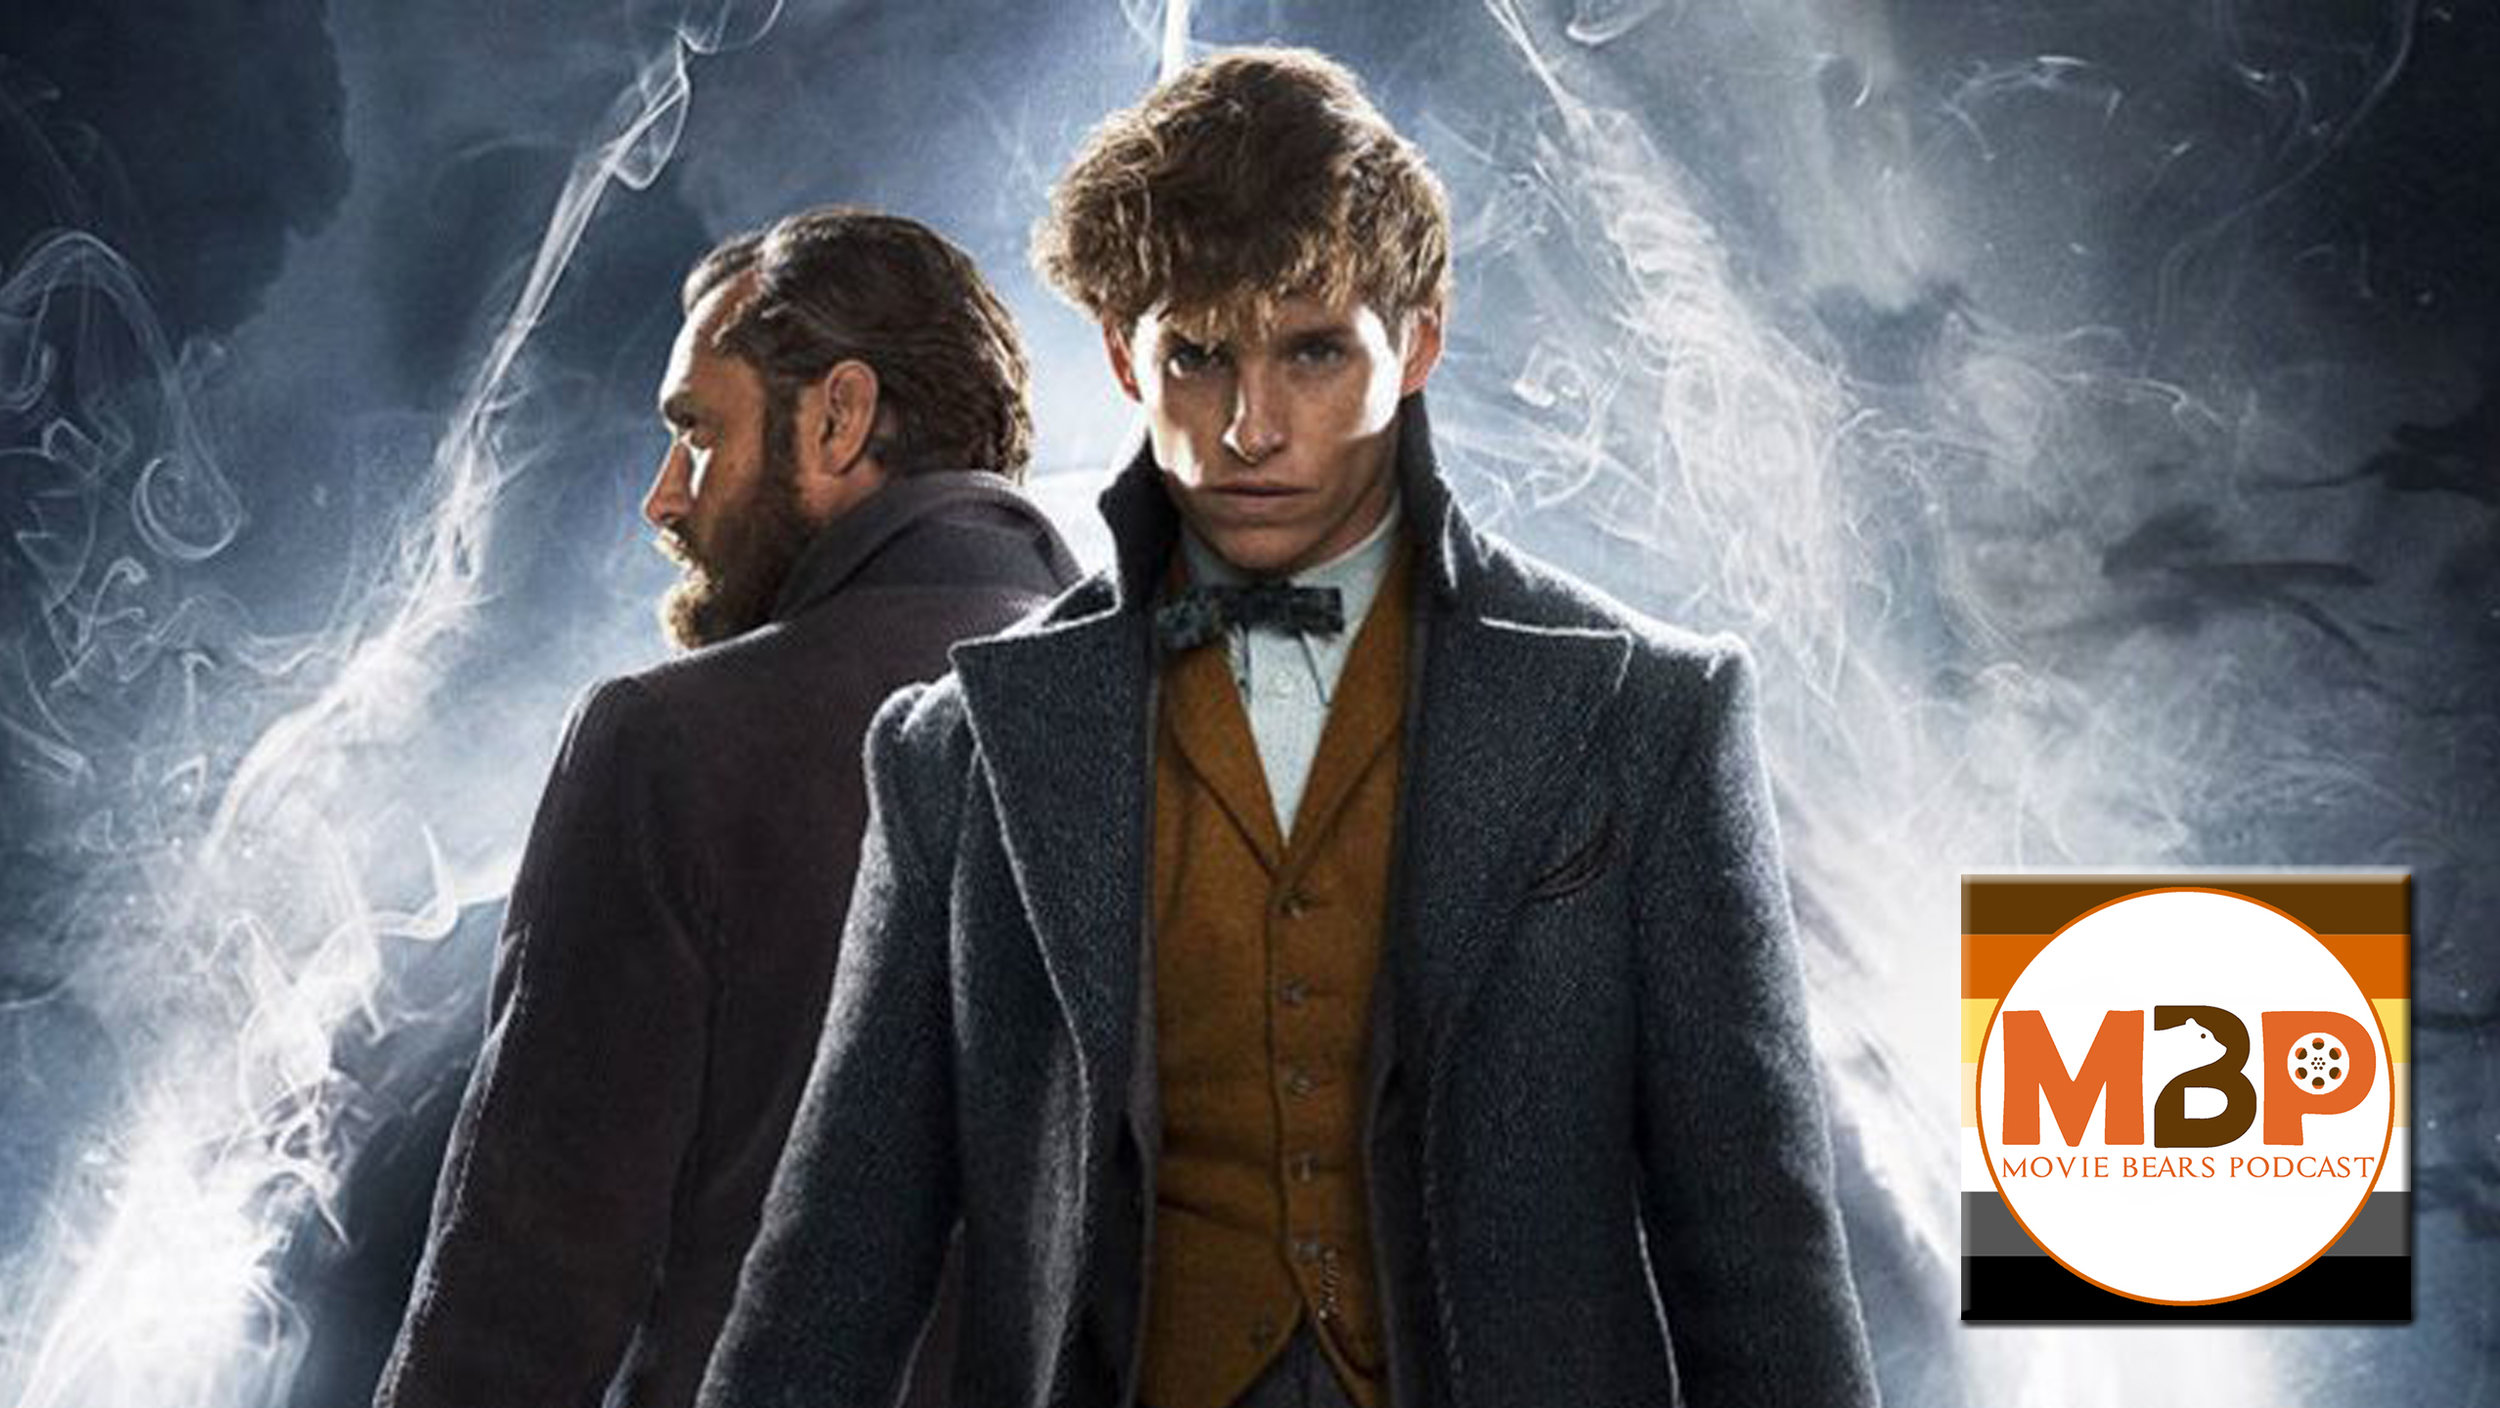 M   BP e301 - 'Fantastic Beasts: The Crimes of Grindelwald' (11/20/18)    Ready your wands, we're off to the Wizarding World of Harry Potter - err, the cinematic world, not the theme park. In this week's episode, we review 'Fantastic Beasts: The Crimes of Grindelwald.' Does this capture the same magic as the rest of the franchise? Click through to listen!